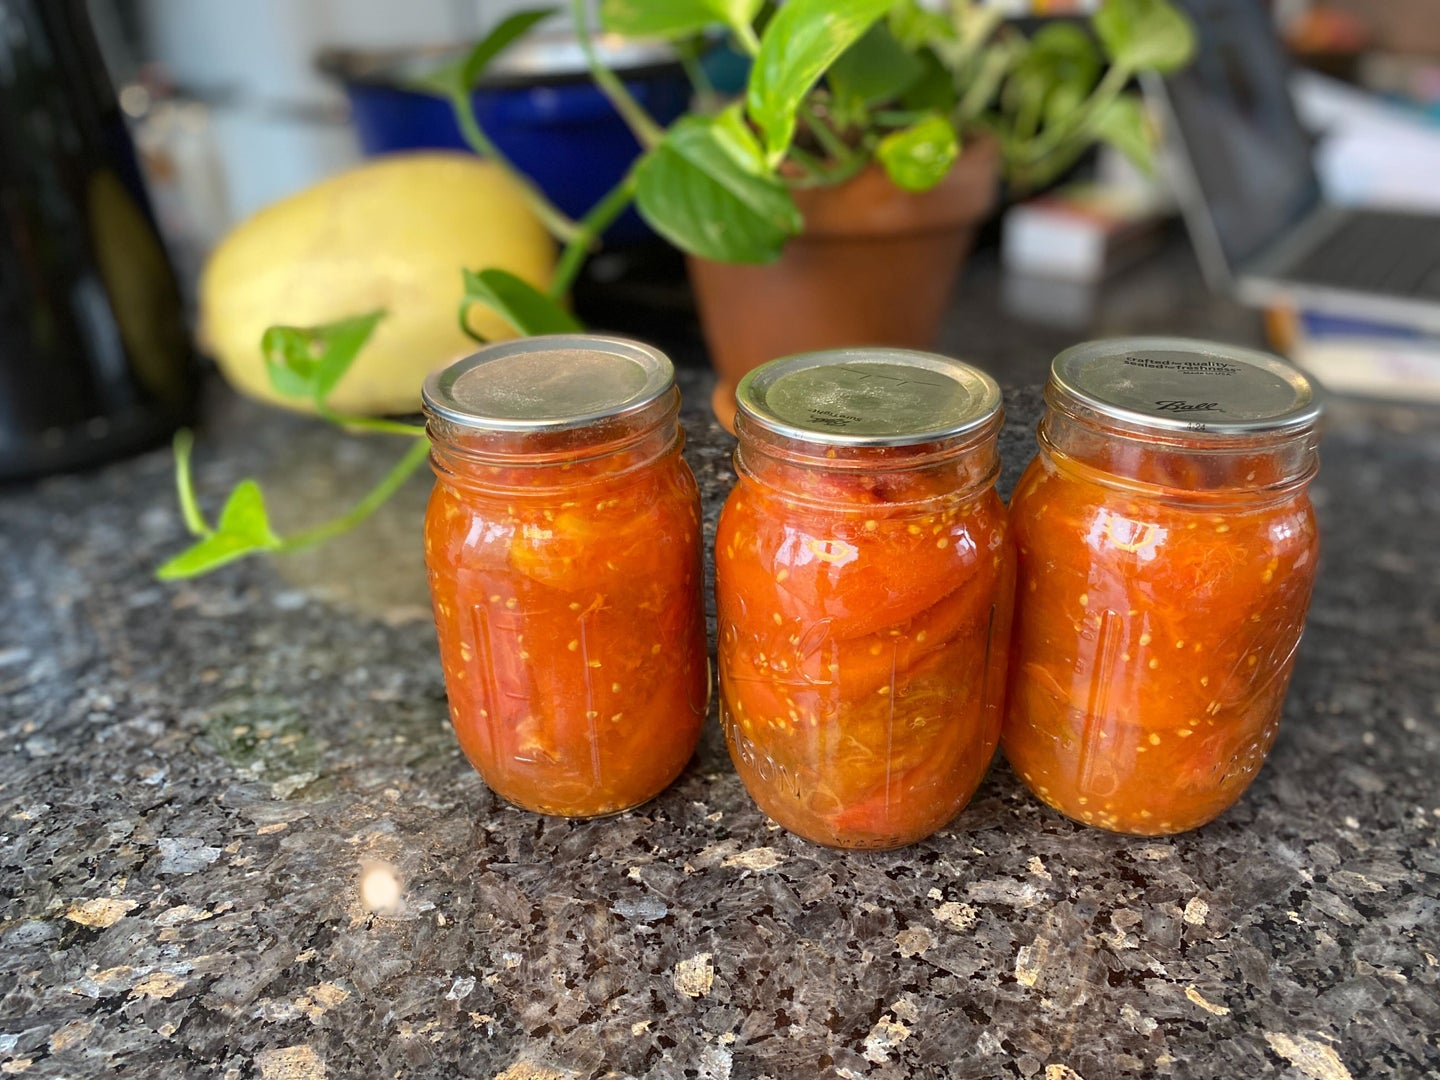 canned tomatoes in jars on a marble countertop near a plant